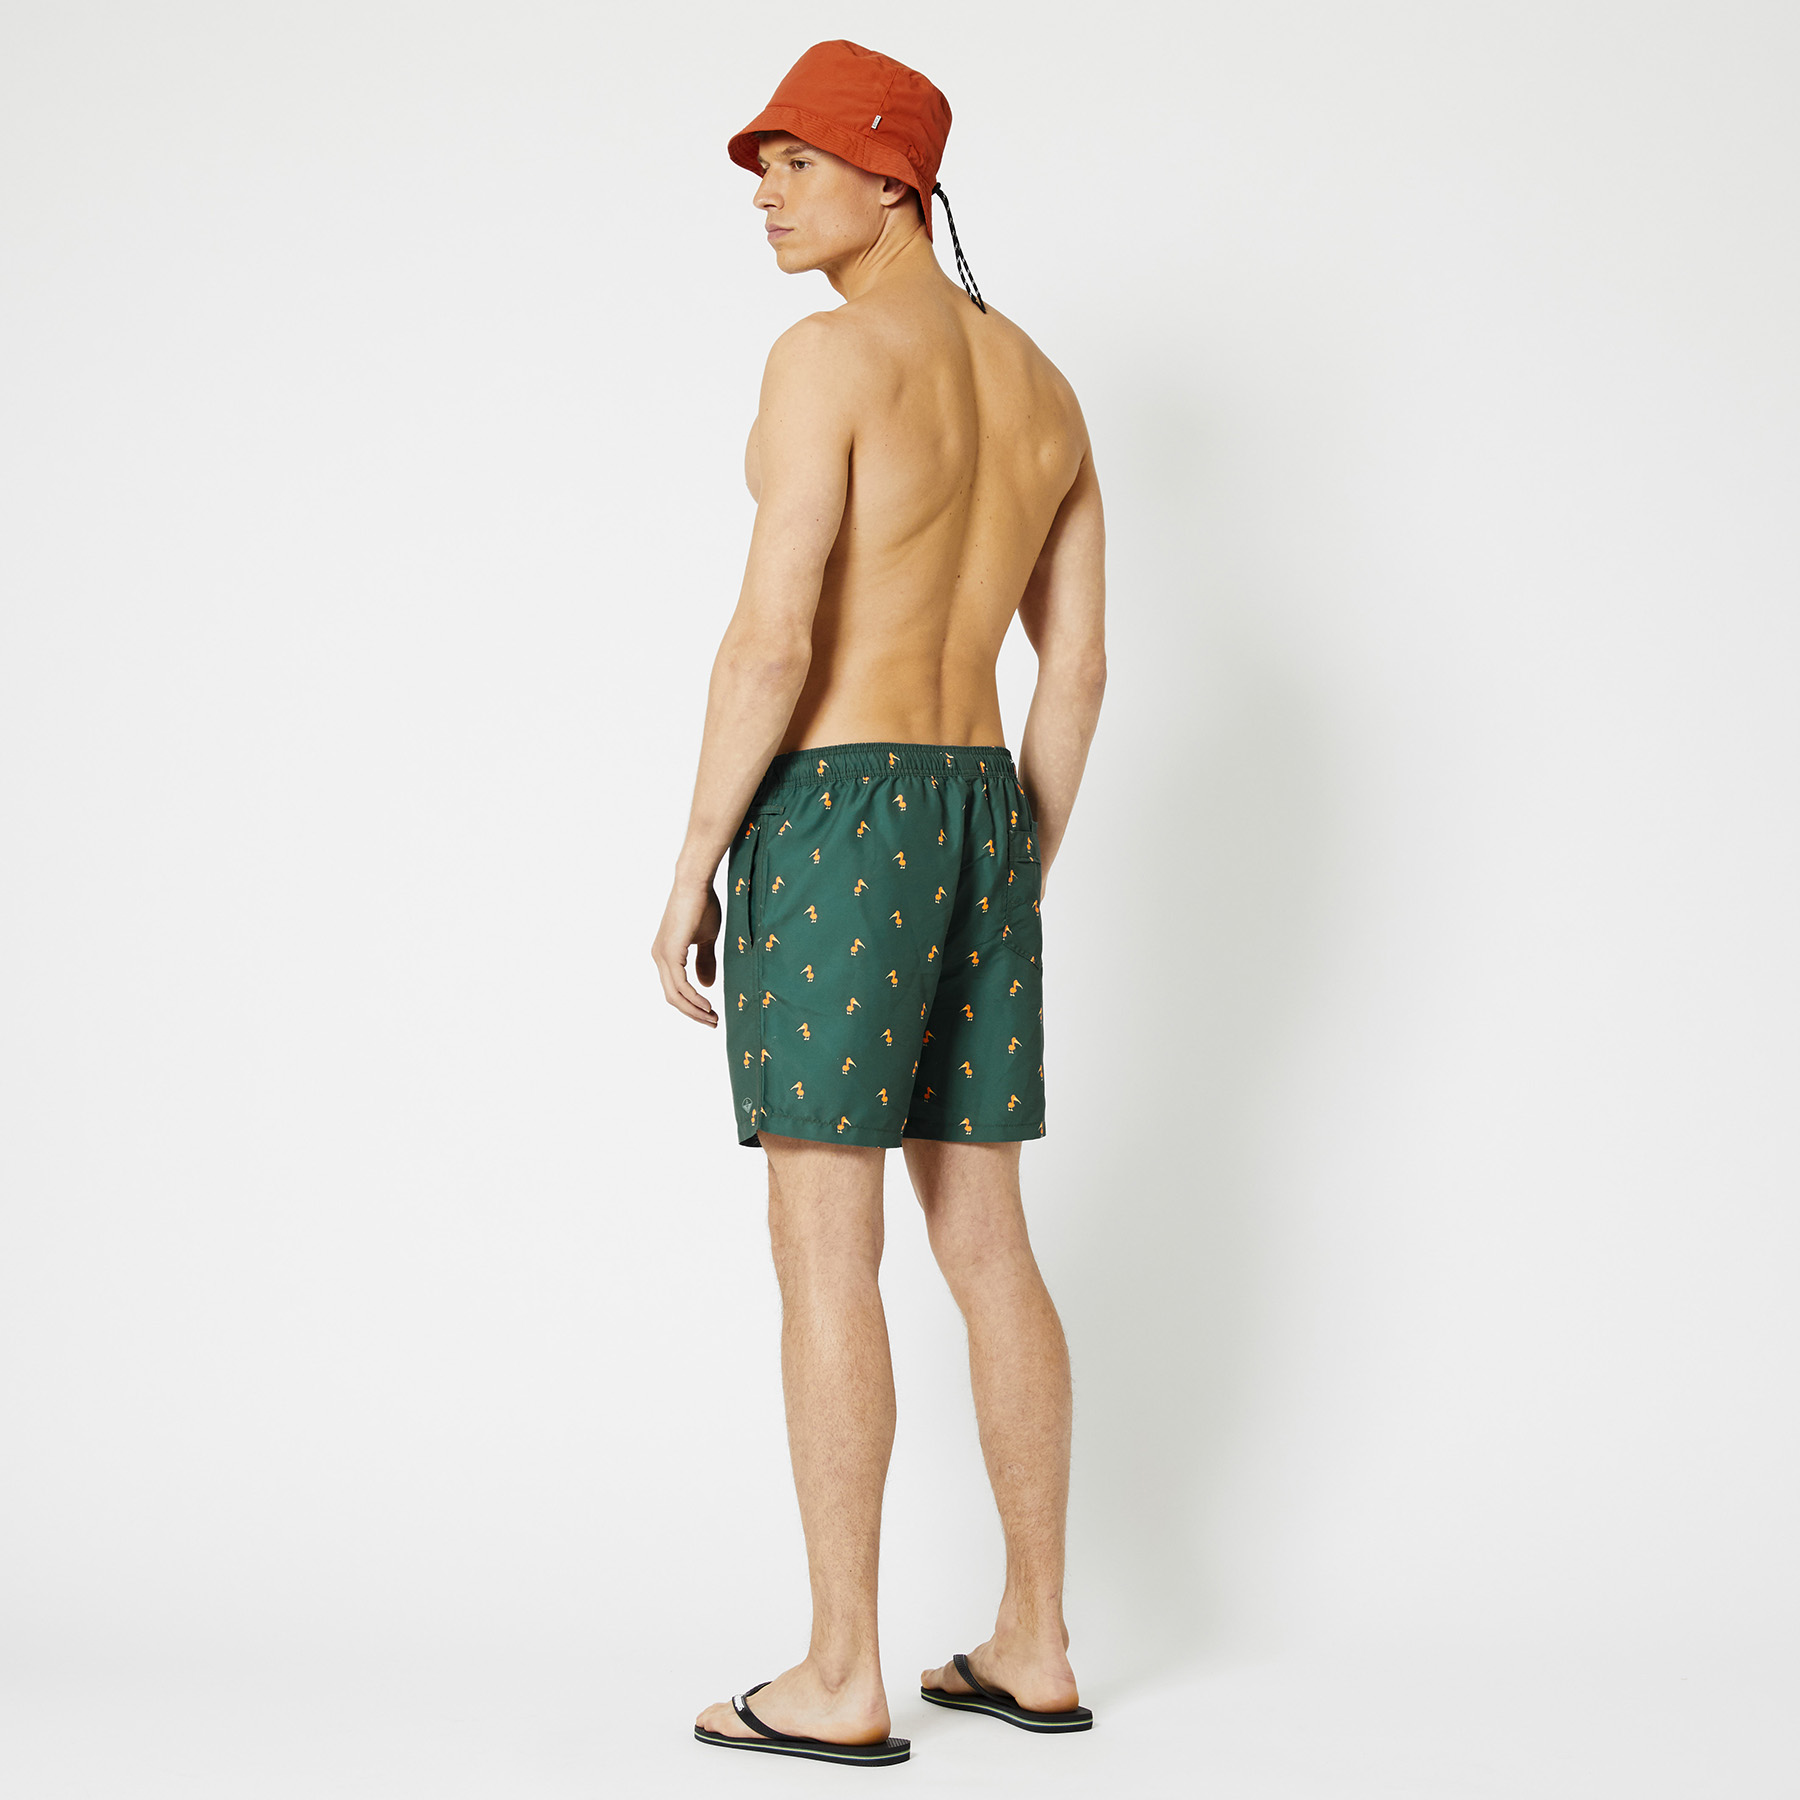 Swimming trunks Arizona FUN AOP